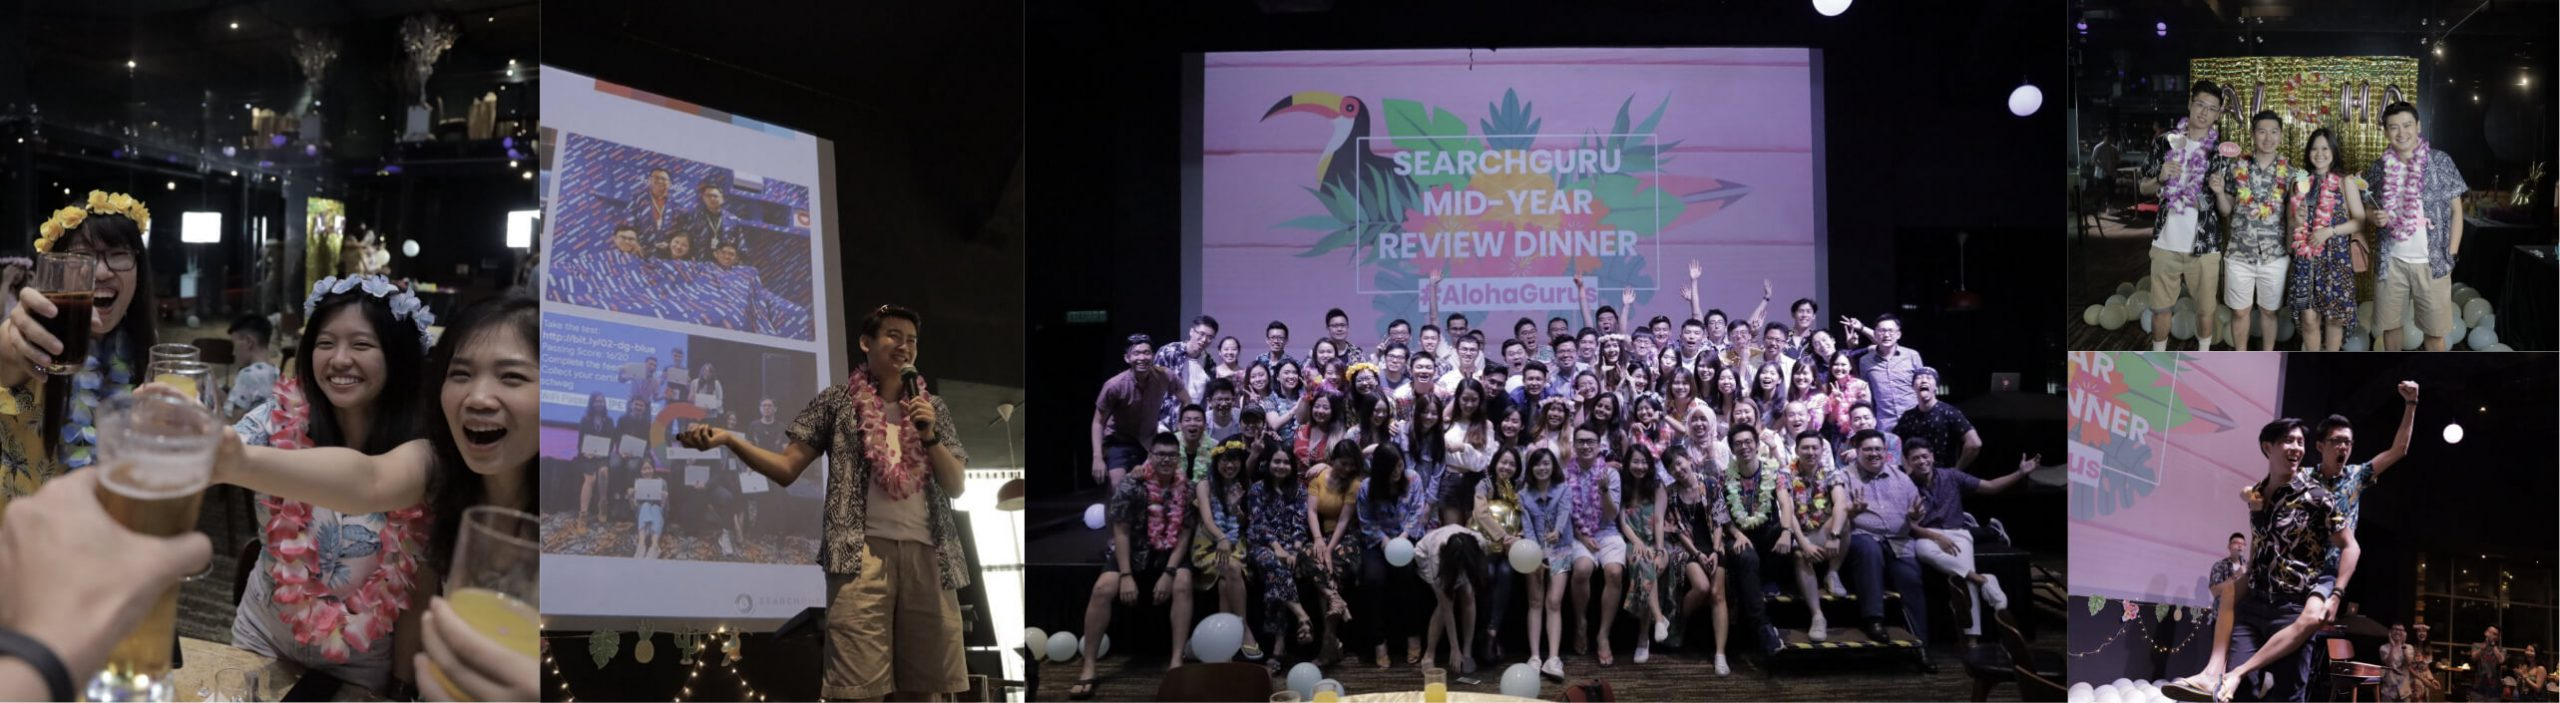 Our Mid-Year Luau was full of food, fun and laughter